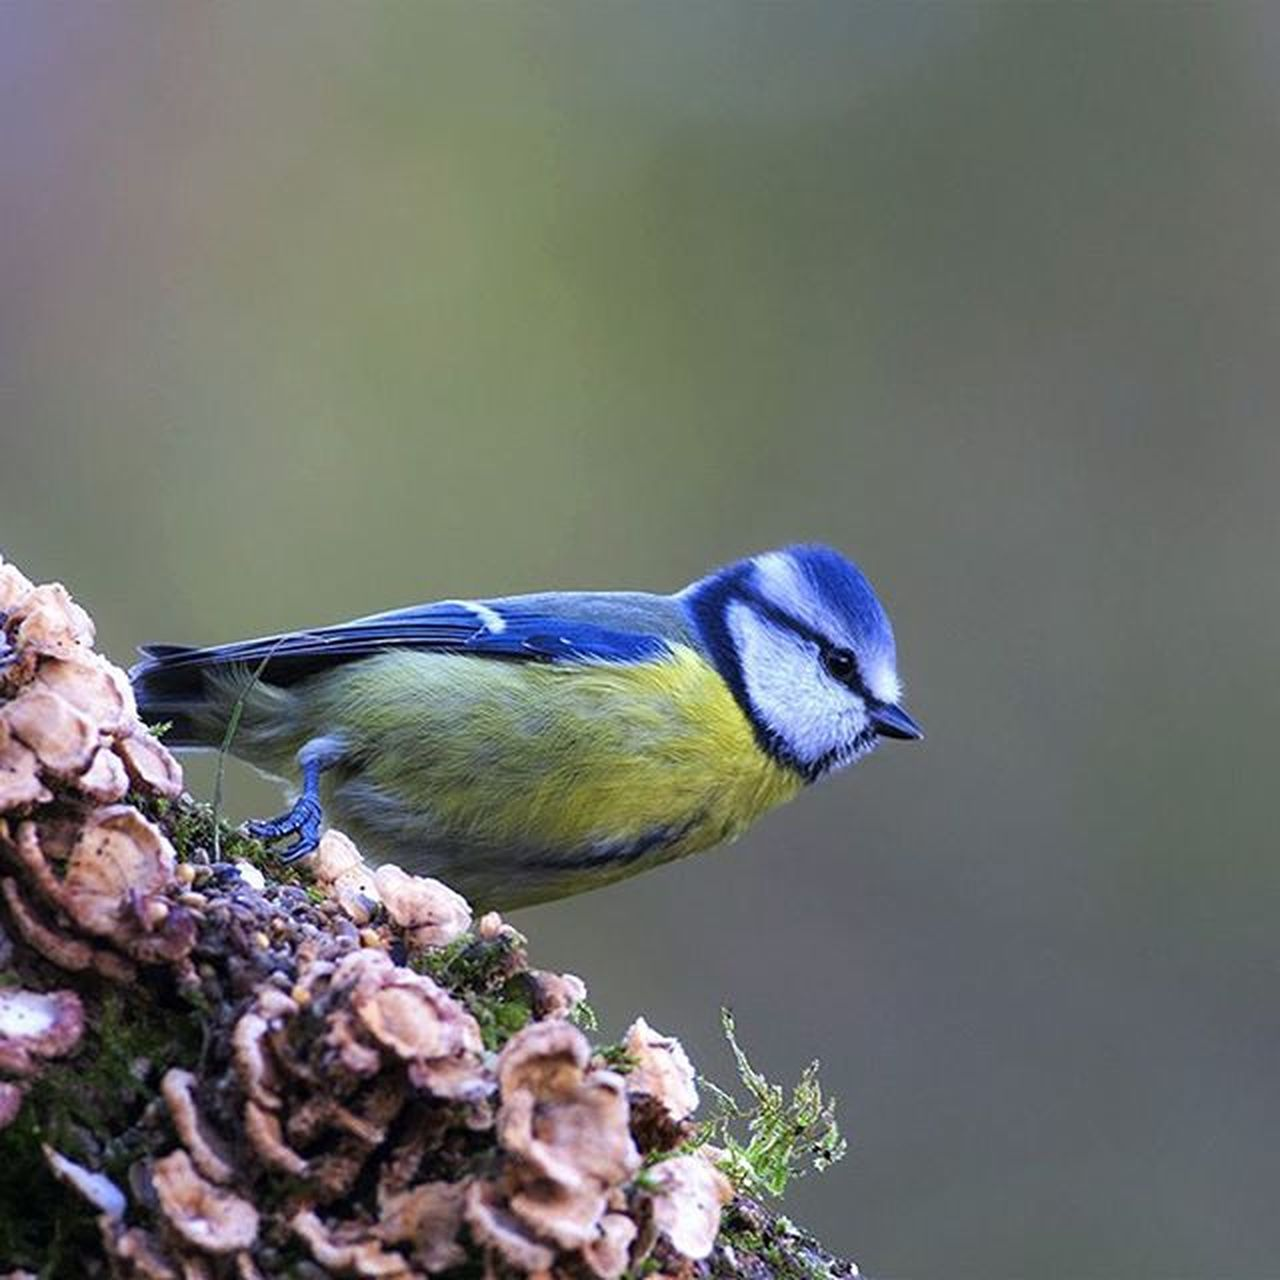 Cyanistes caeruleus, Cinciarella ,  Blue tit, Ornithology  Ornitologia Photo Fotografianaturalistica Fotos Nature Wild Wildshot Wildnature Bird Birdwatching Instagood Instagram Lovephotography  LovePhoto Canon Canon Reflex